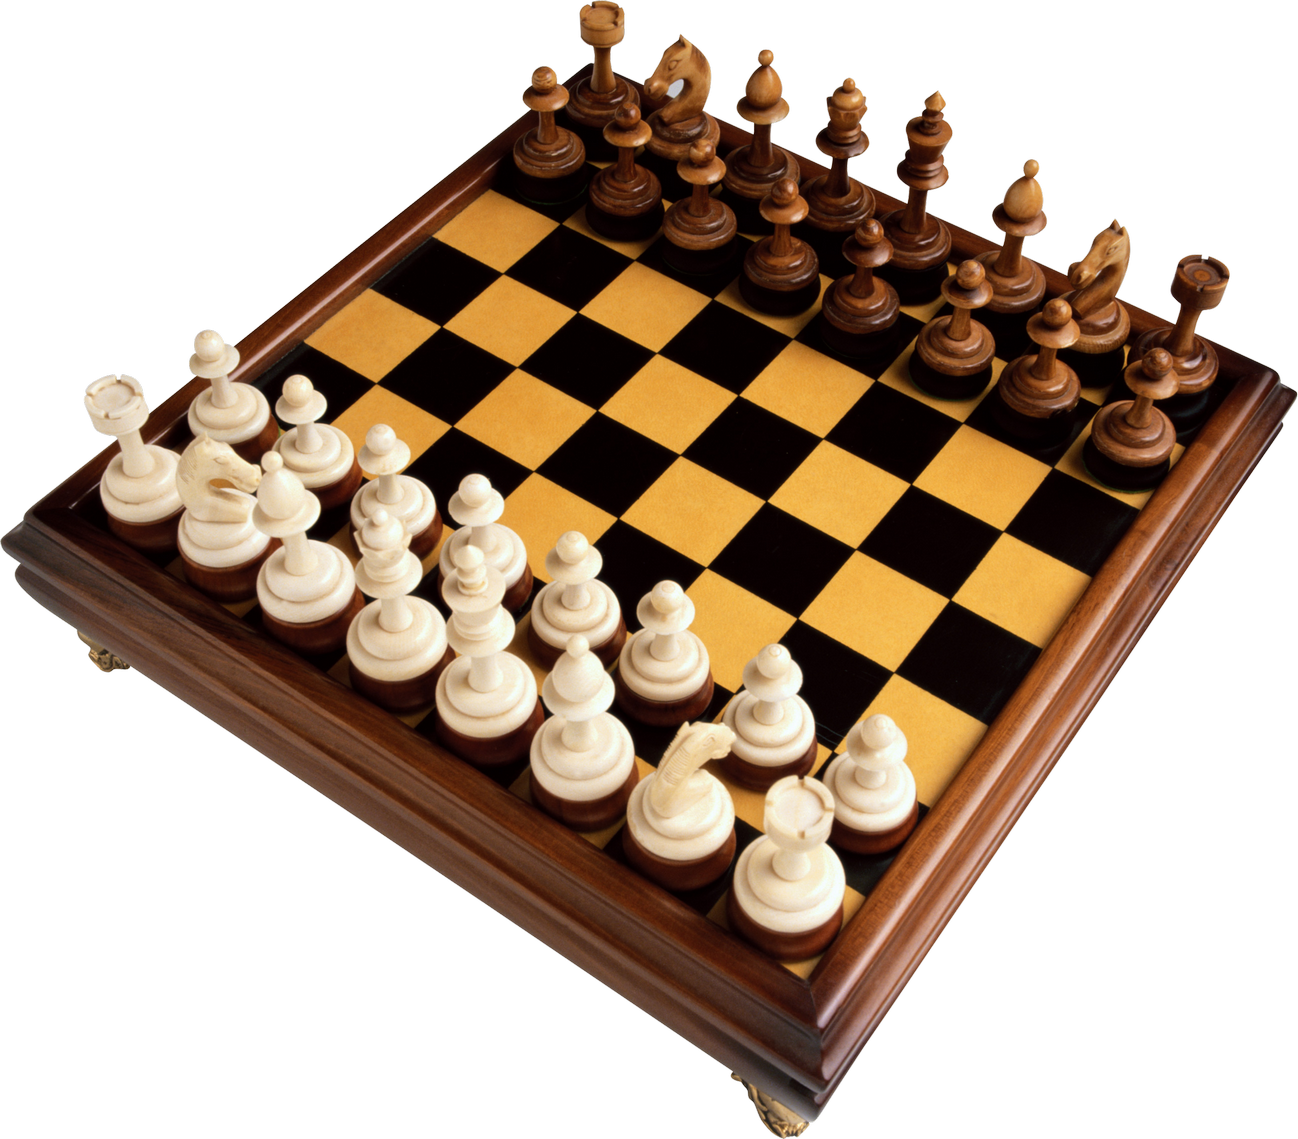 Pin By Udash On Chess Chess Game Chess Board Png